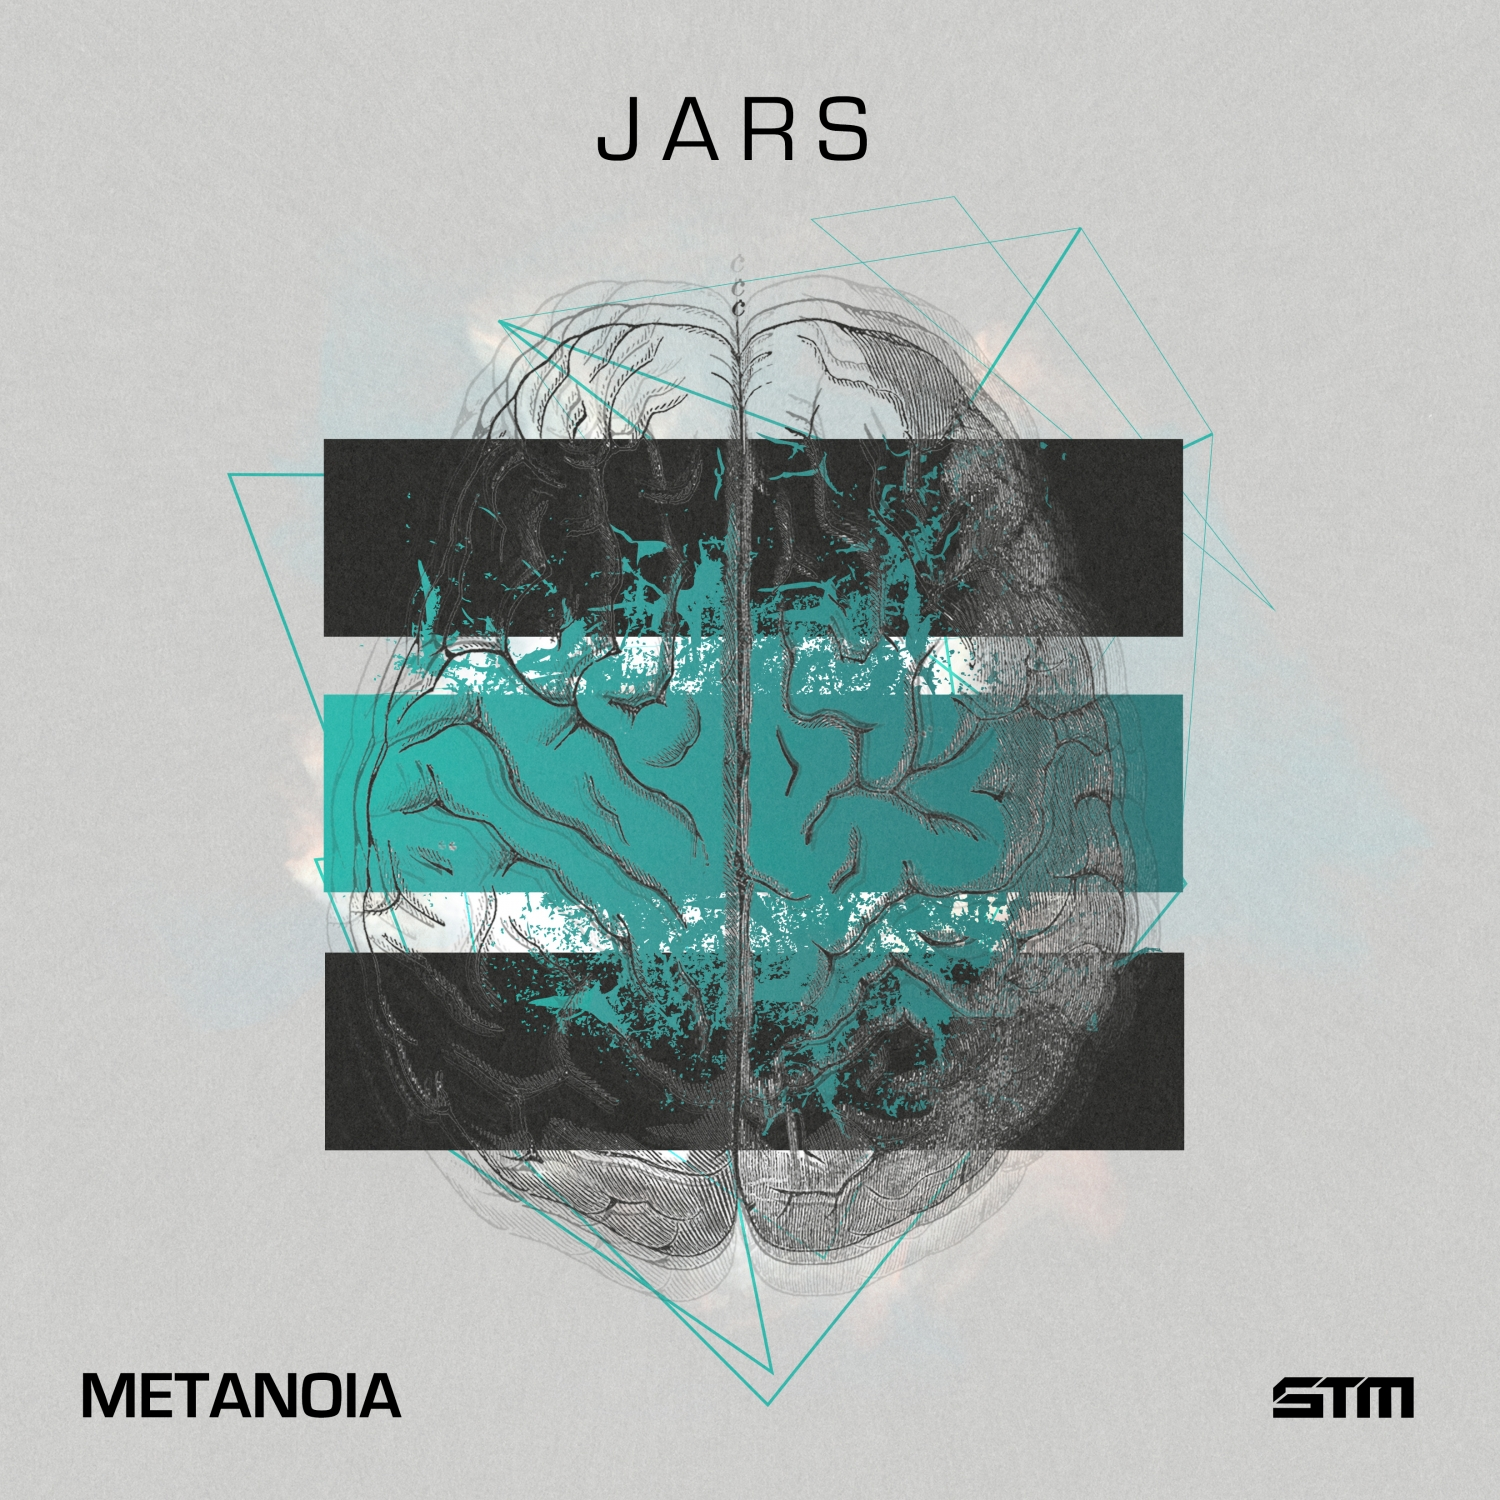 JARS - Jurassic (Original Mix)